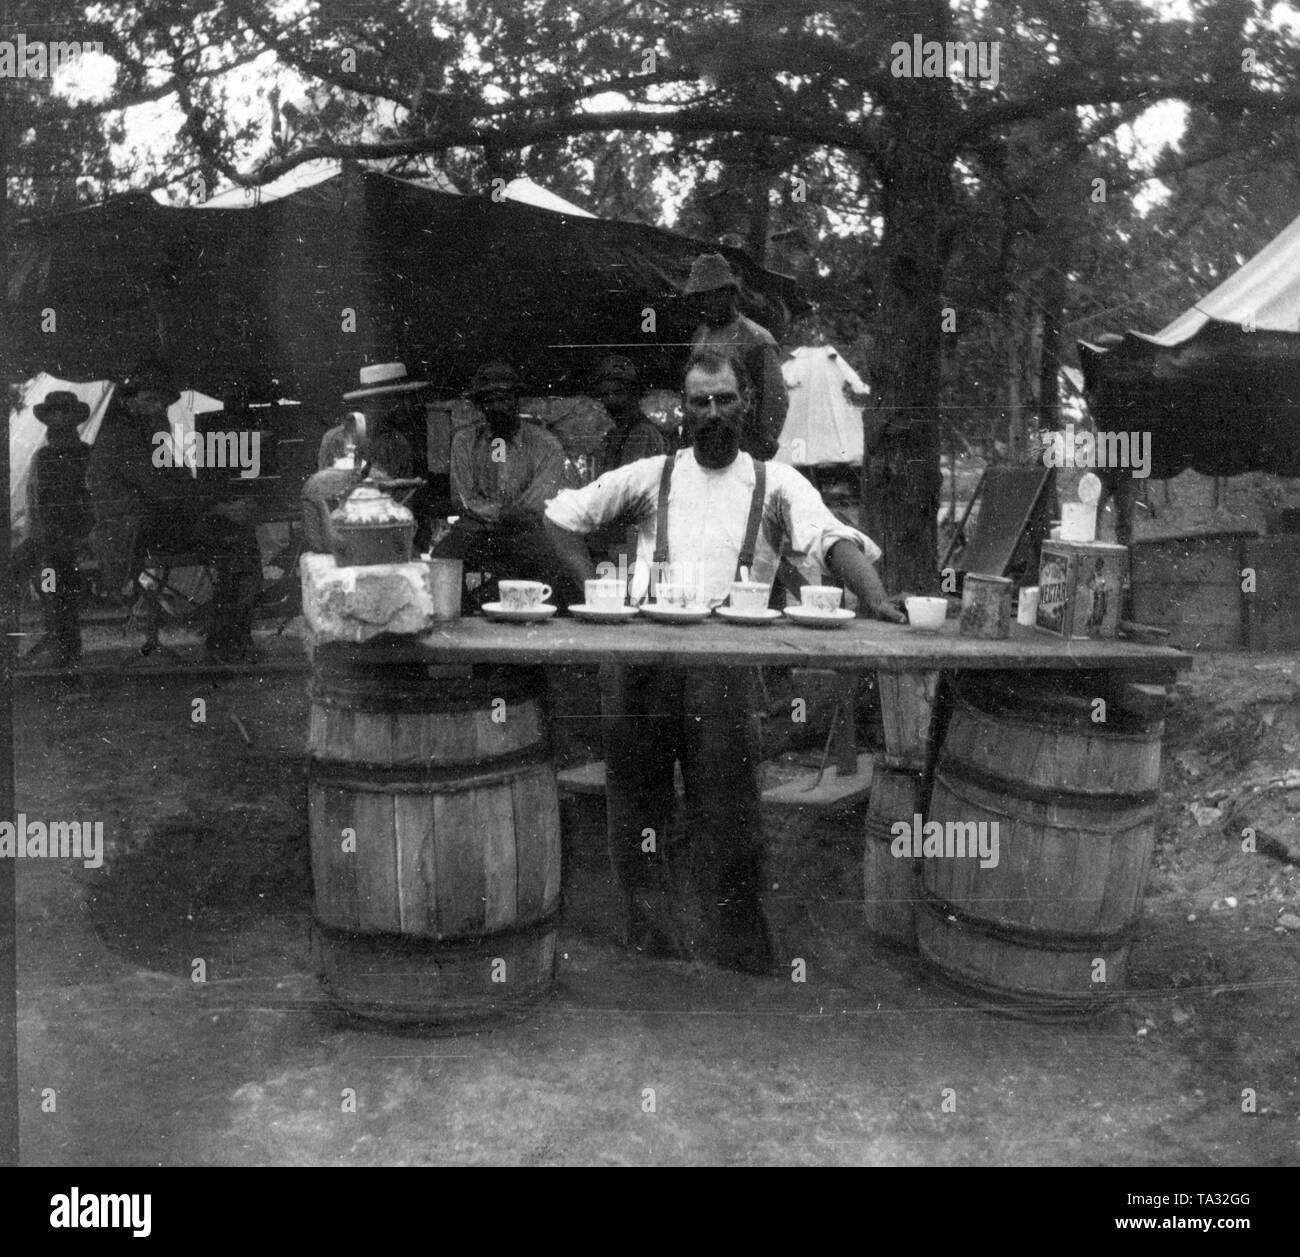 Captive Boers from South Africa, concentration camps 1899-1902: Boers in a detention center on the Bermudas - coffee kitchen. - Stock Image